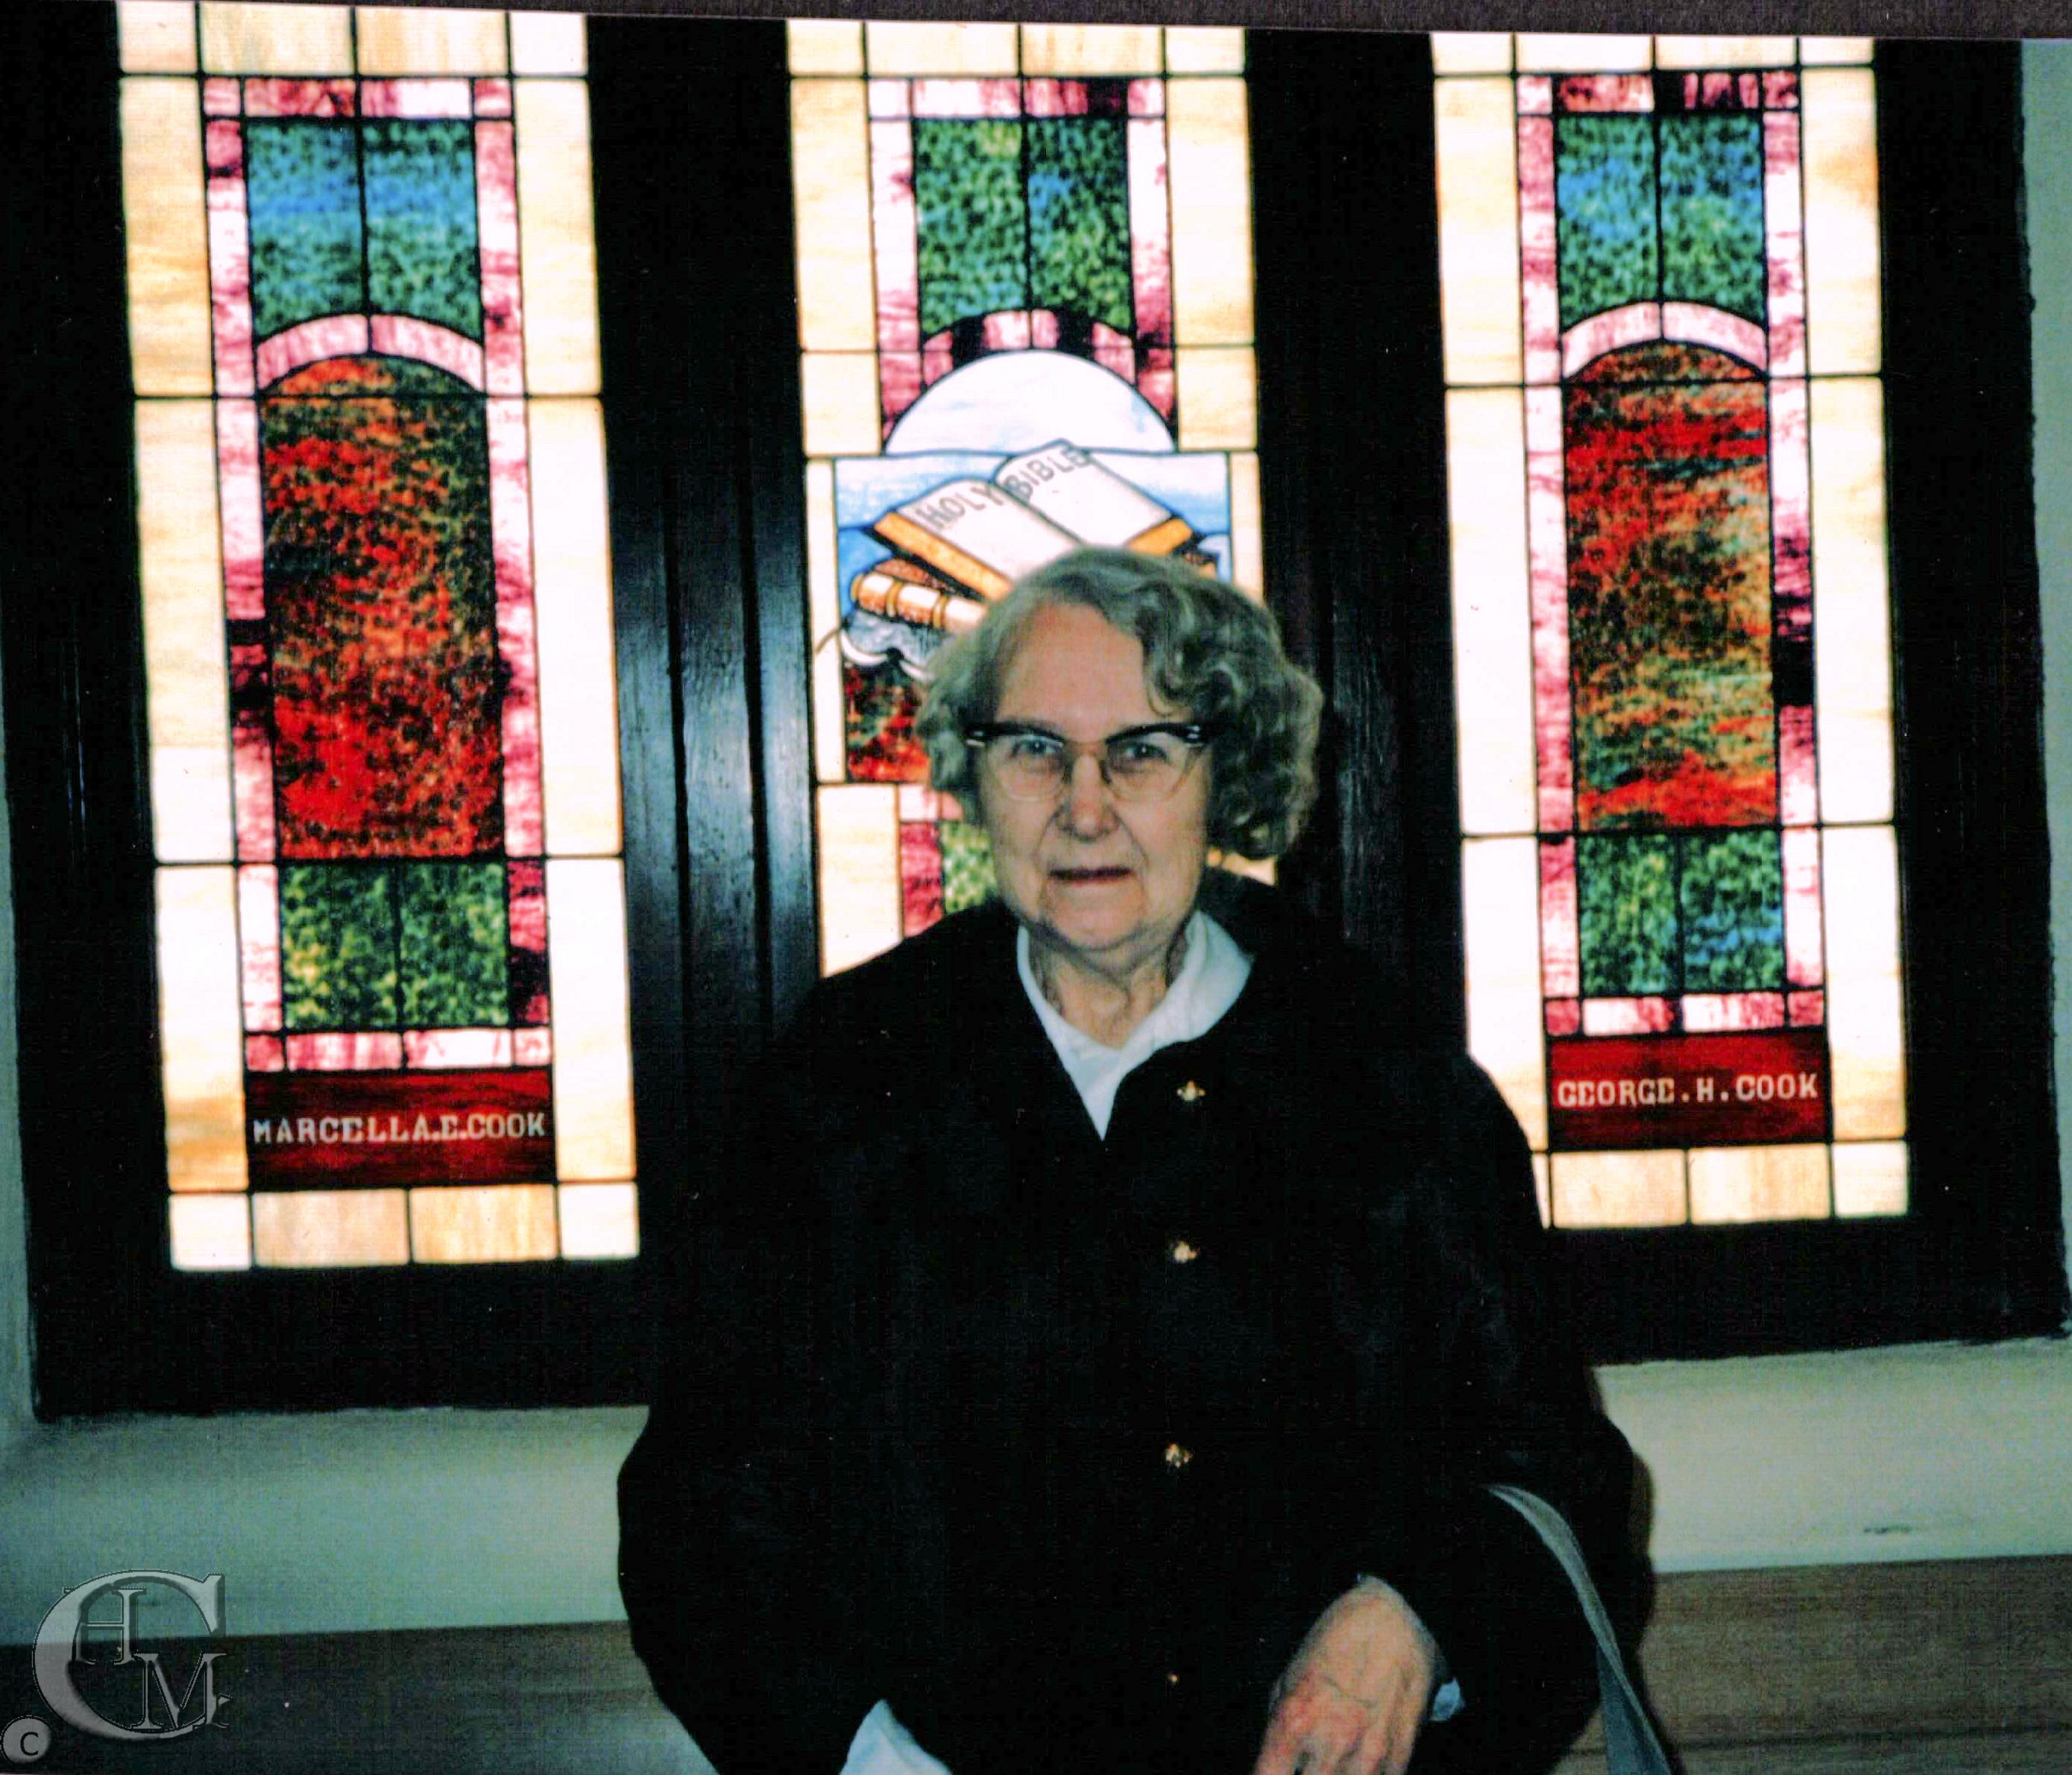 Church member, Jean Christianson stands in front of the stained glass window donated by Marcella and George Cook